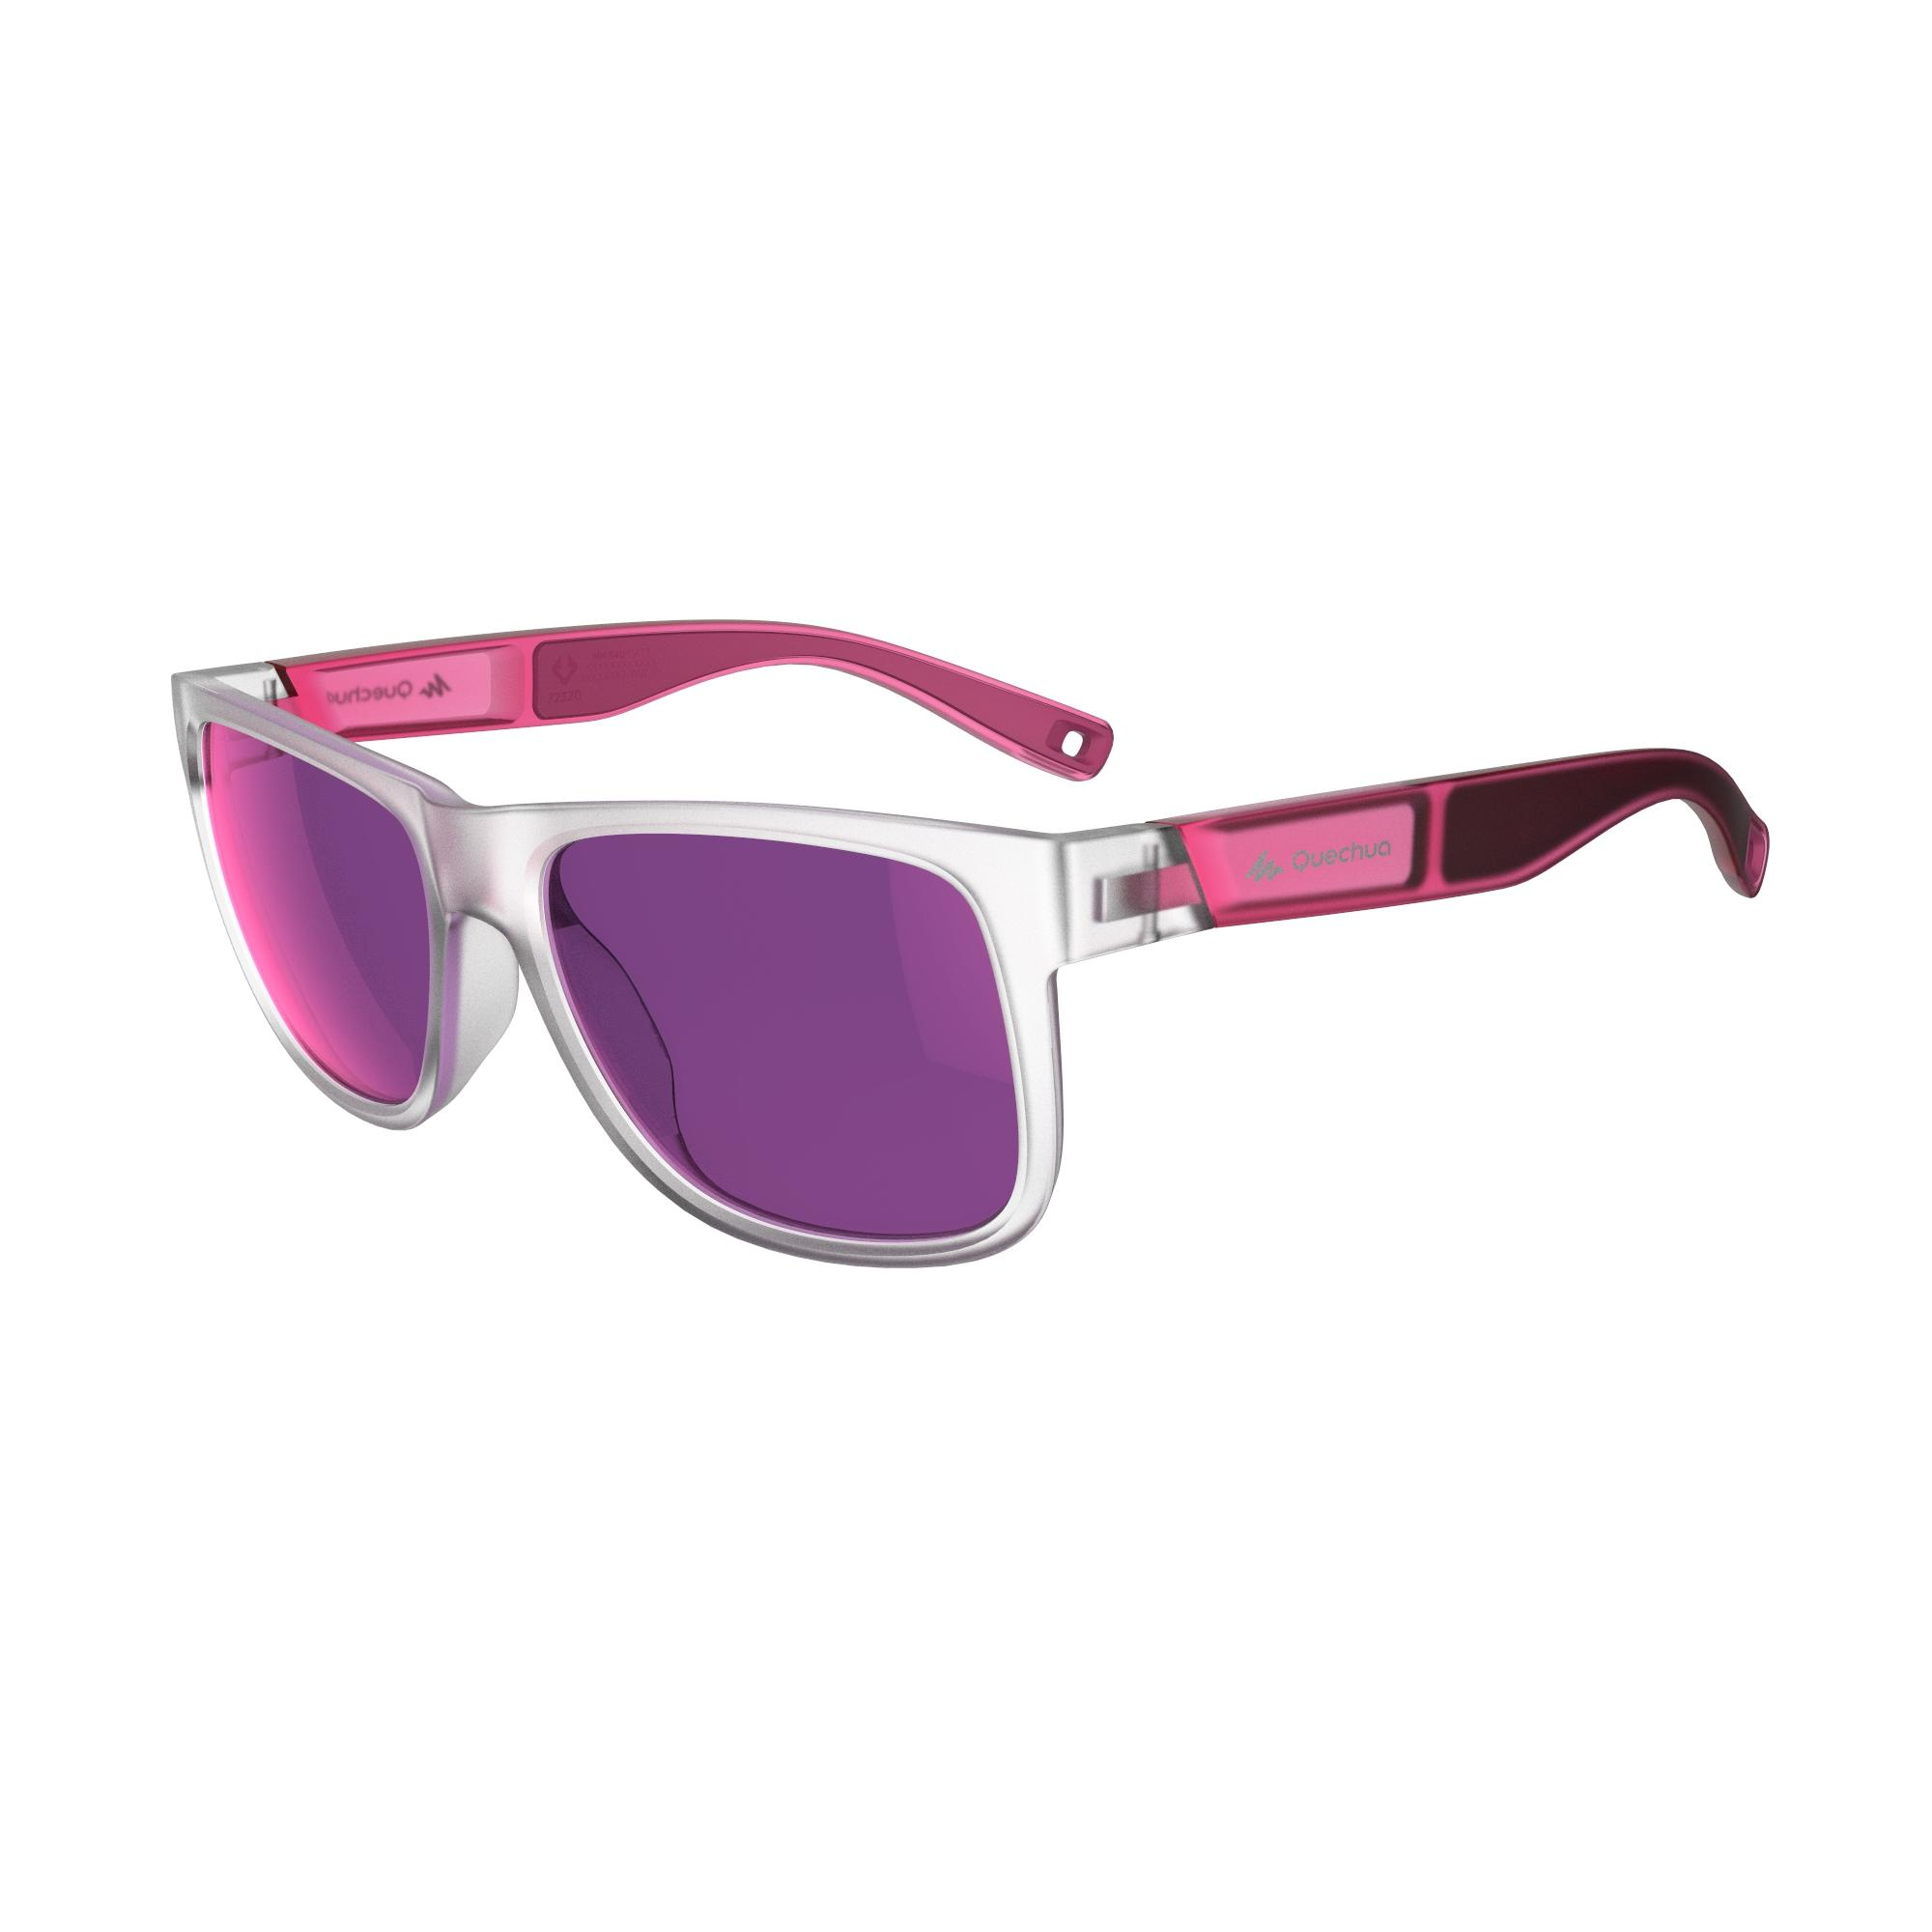 MH 540 Adult Category 3 Hiking Sunglasses - Translucent Pink